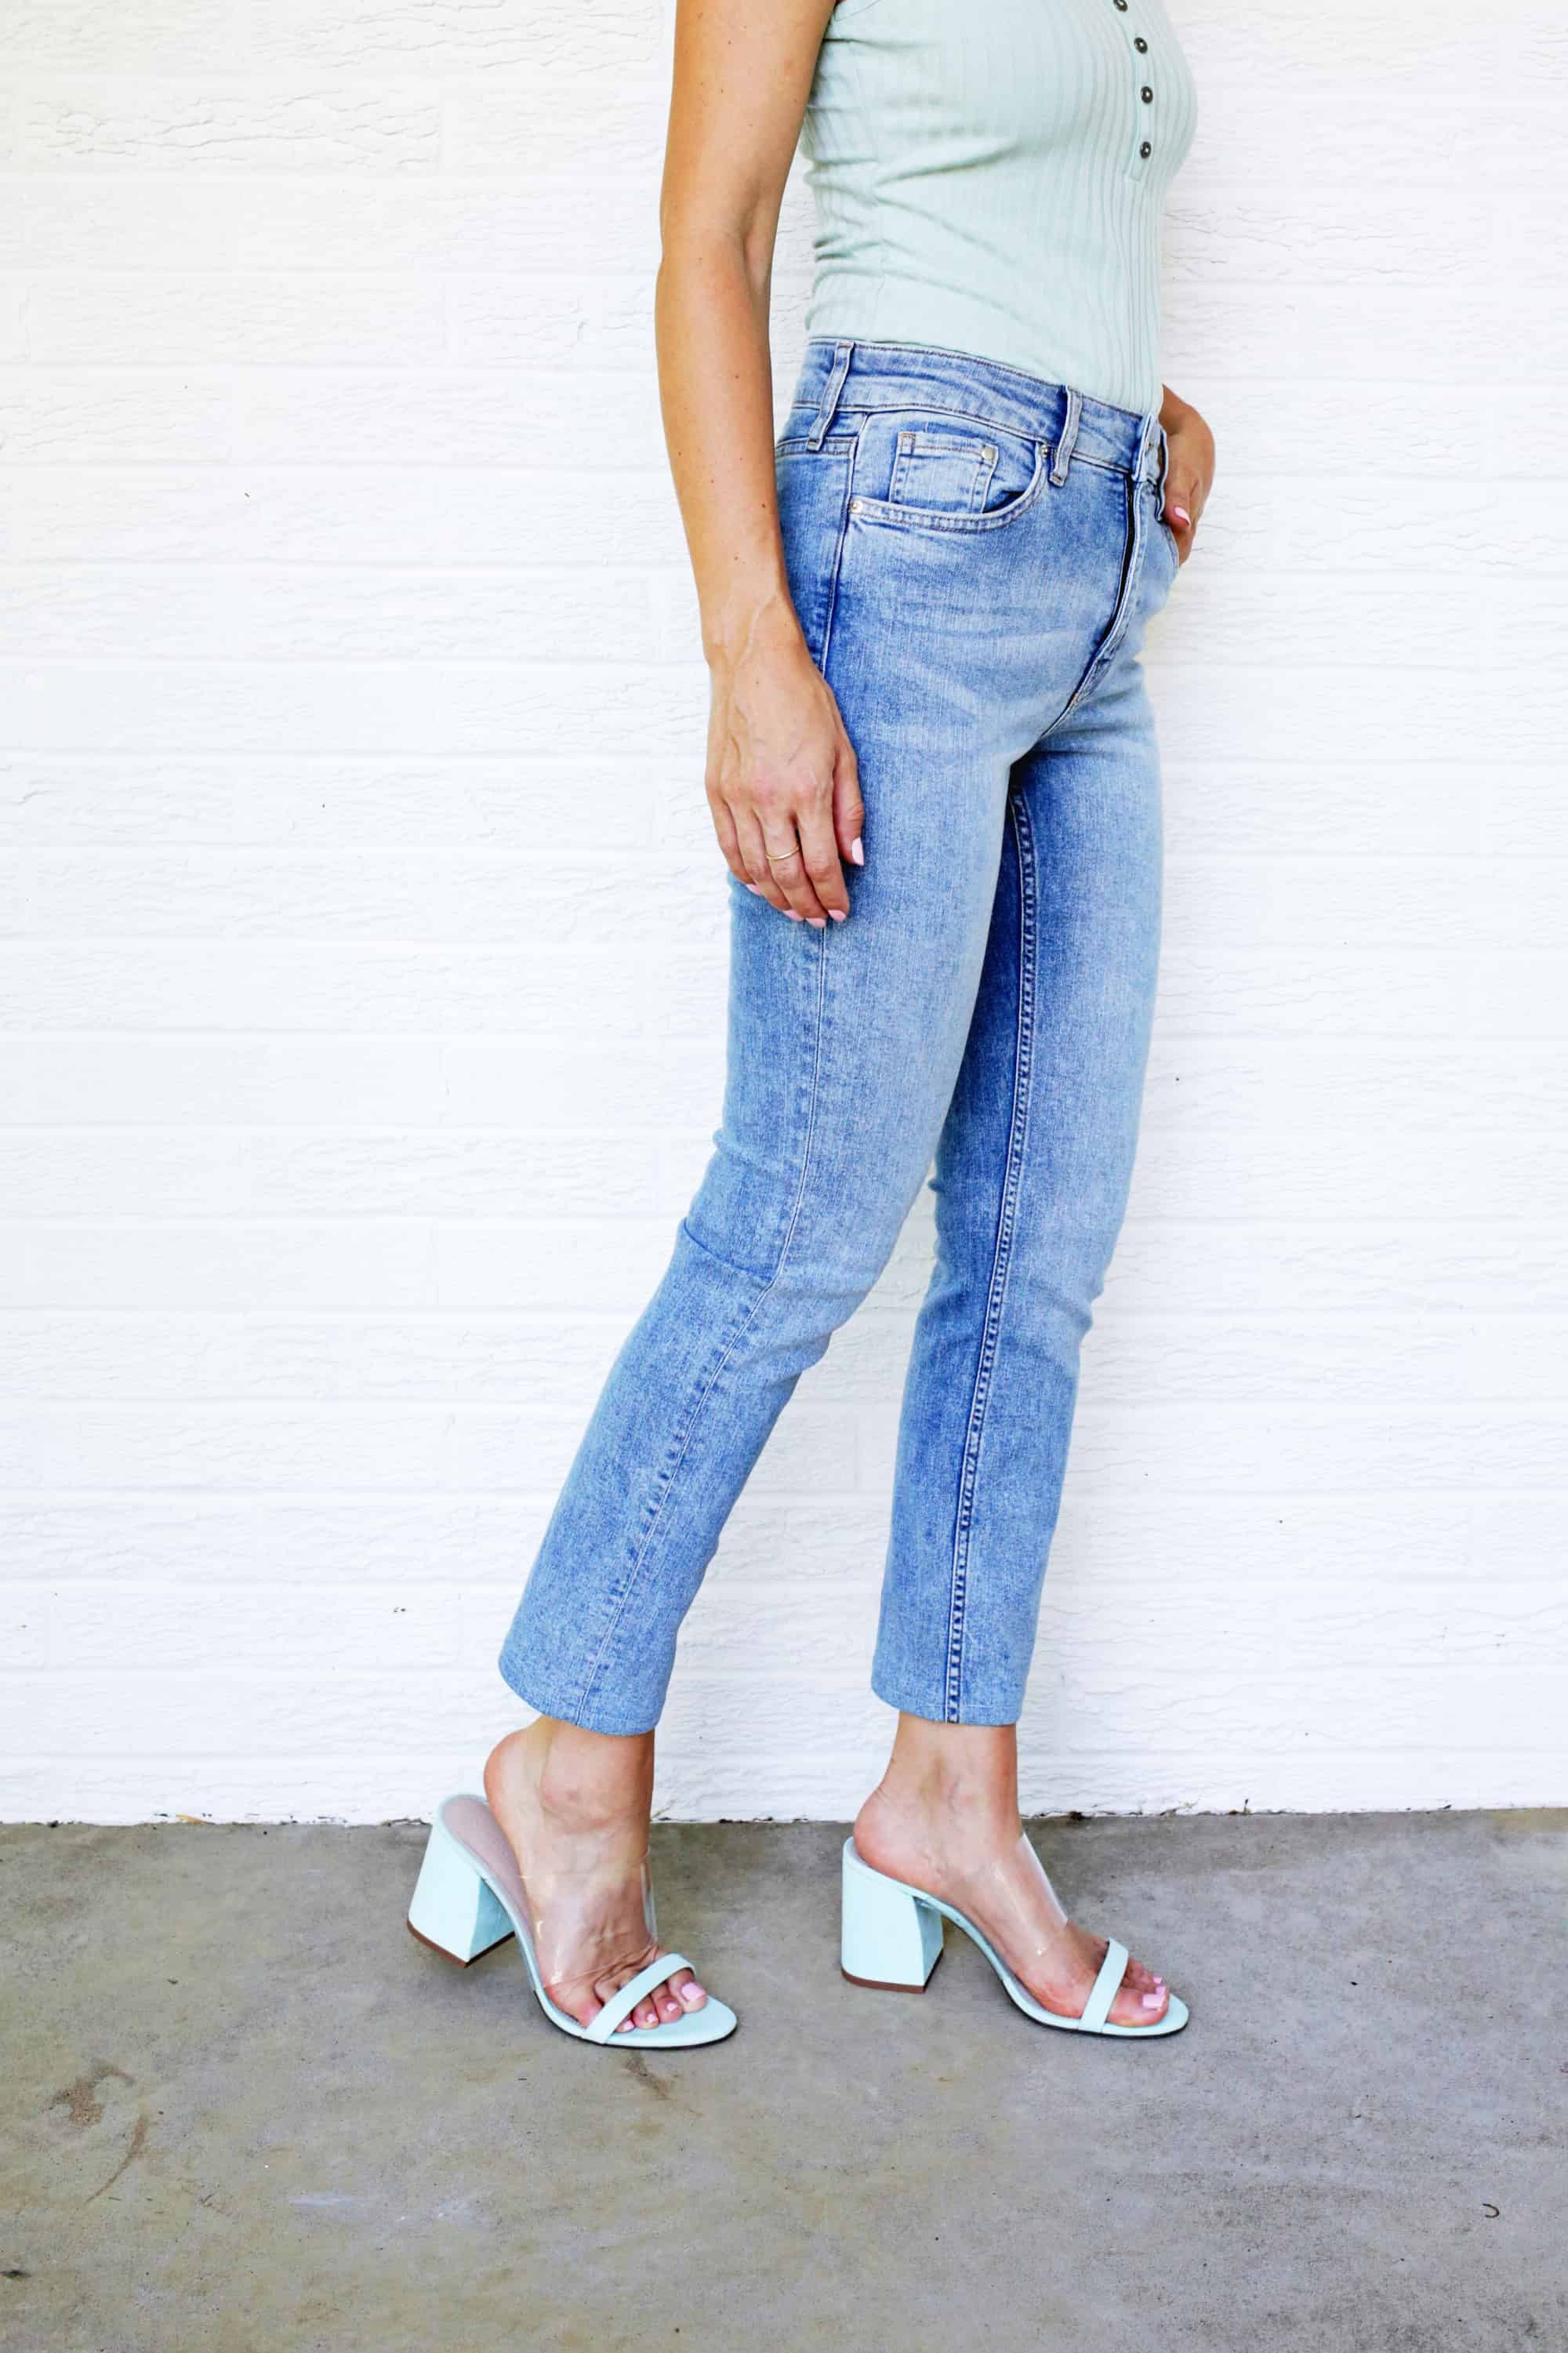 161494a17 See, it sounds so daunting to hem your jeans but it's actually pretty simple  once you try it (P.S. How cute are those mint mules?!). Since I hem pants  all ...